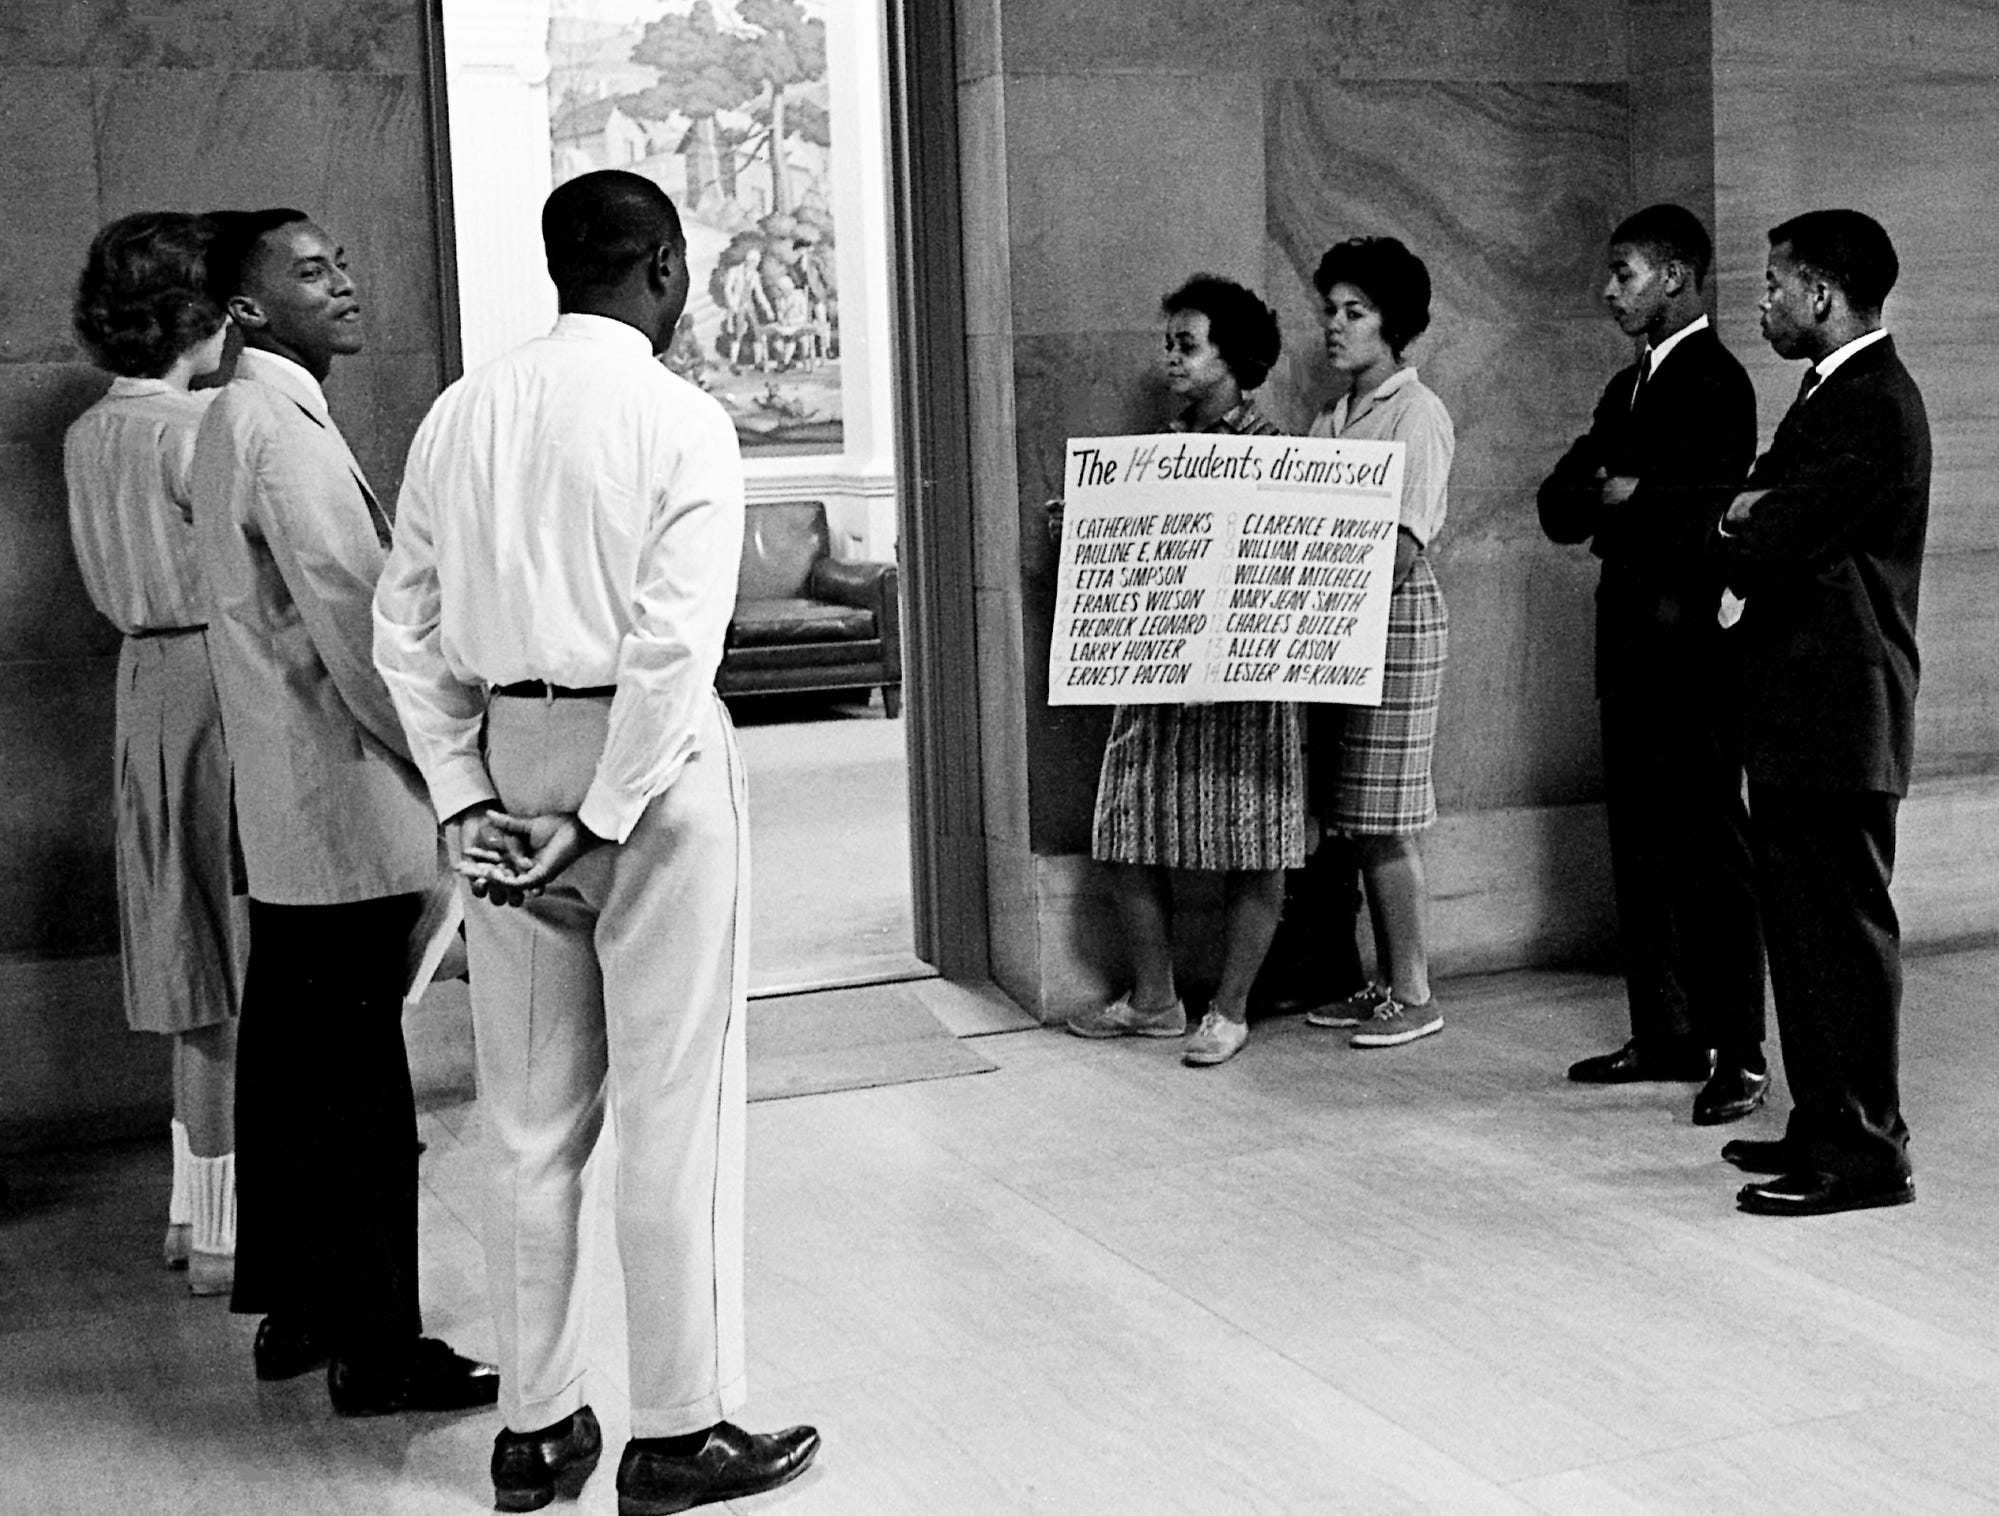 A group of demonstrators tried to see Gov. Buford Ellington on Sept. 8, 1961, to seek reinstatement of 14 Freedom Riders dismissed from Tennessee A & I State University in June after their convictions on breach of peace charges in Jackson, Miss. The group, including John Lewis, right, waited outside the governor's office, but Ellington left his office by a side door and didn't see the protesters.